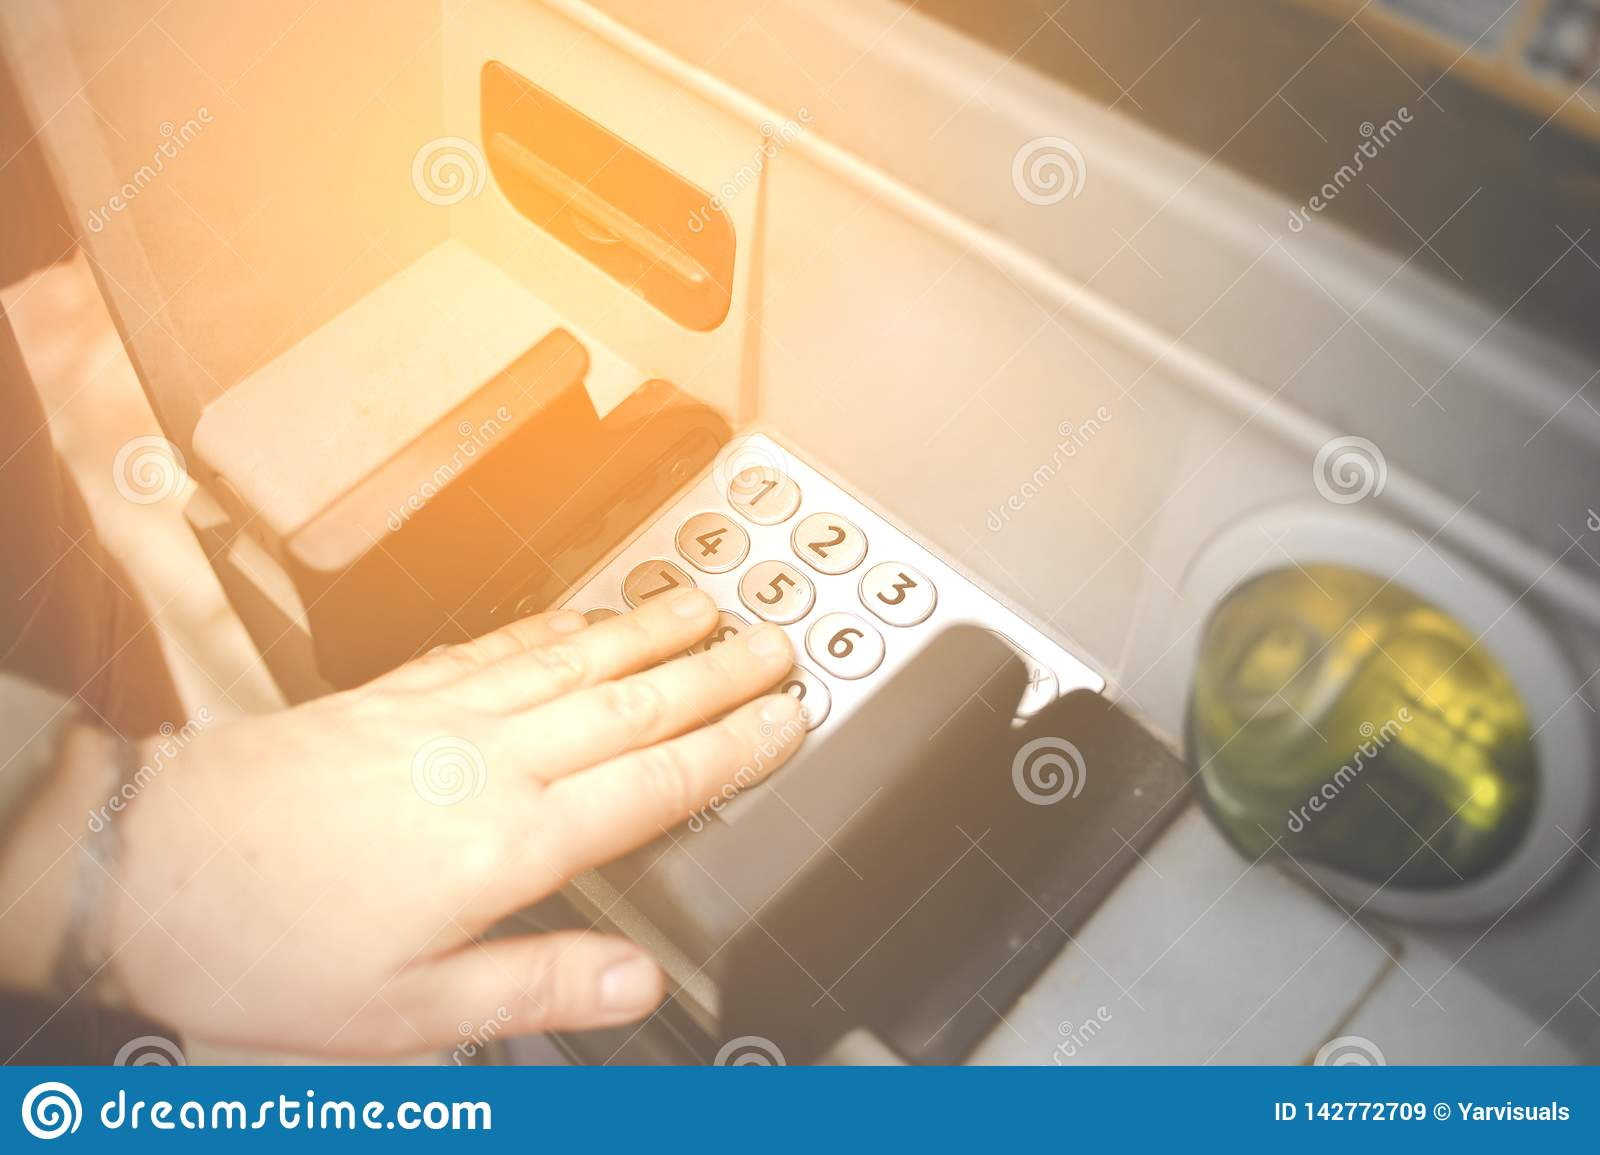 Female mature entering PIN numbers on ATM bank machine . Concept of insecure strangers , thugs , thieves online payments , robbe